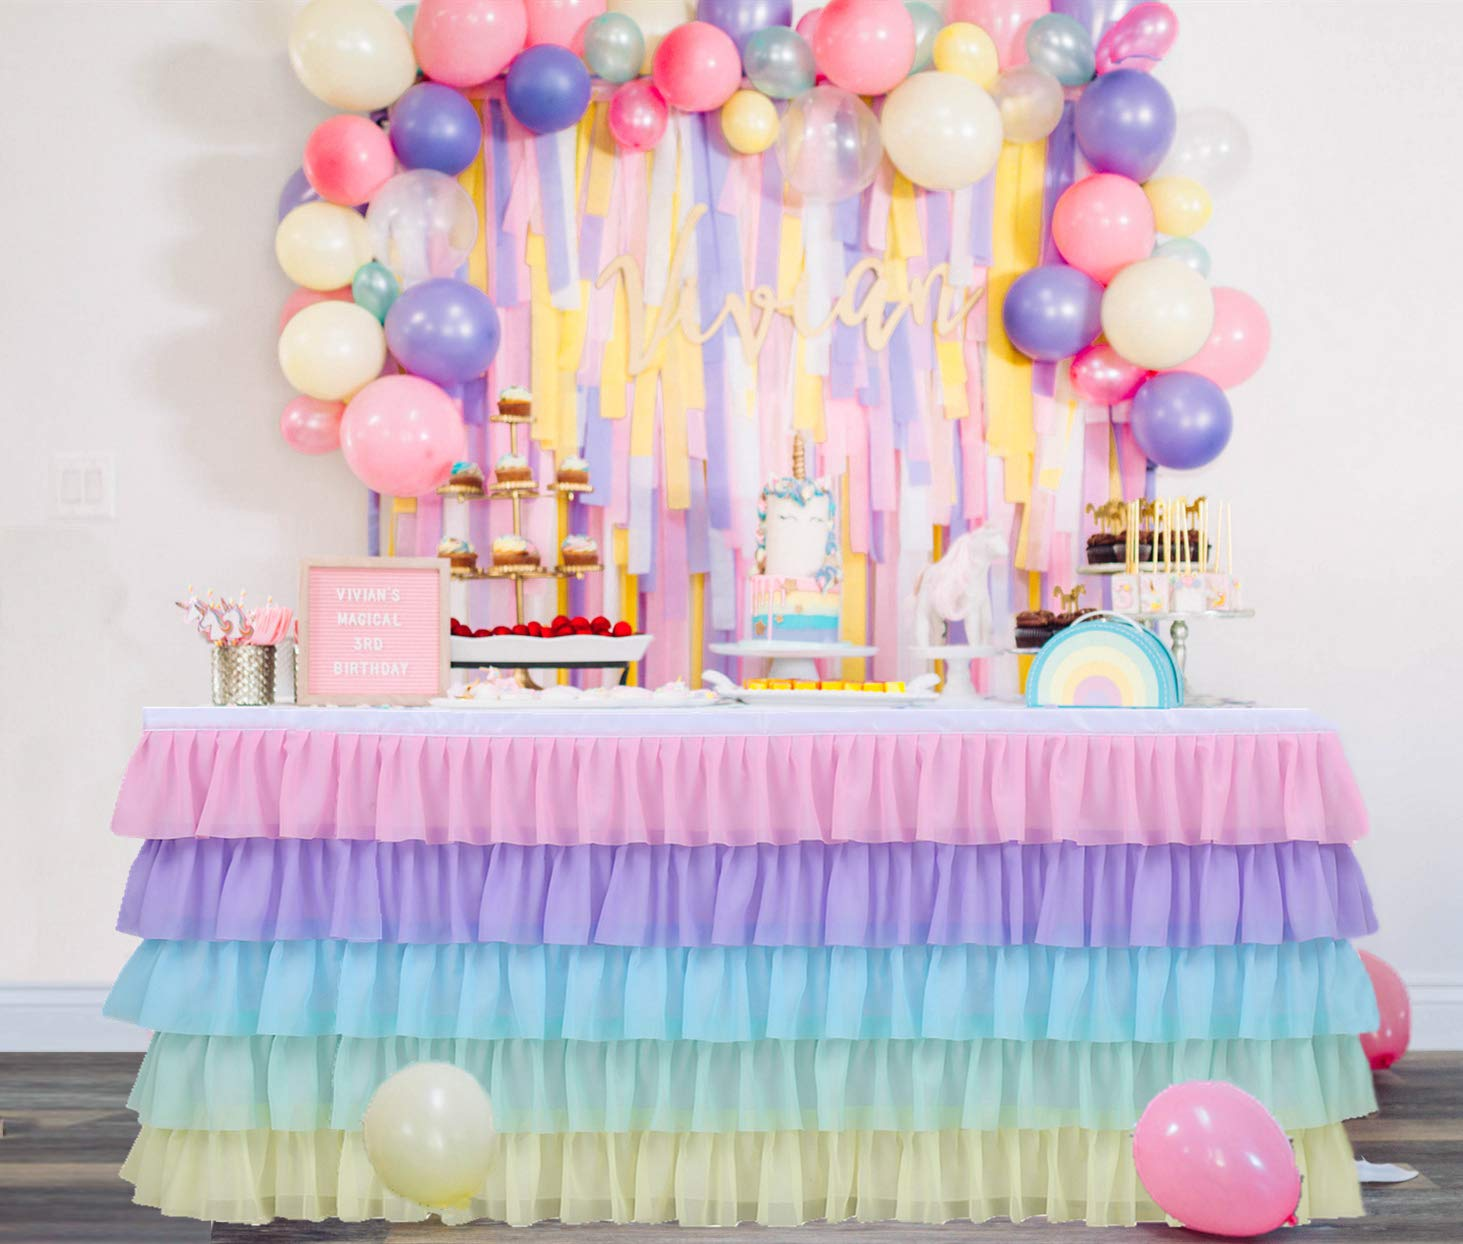 6FT Rainbow Tulle Table Skirt Tutu Table Clothing for Stage Performance Birthday Baby Shower Party Decoration,Unicorn Table Skirt for Rectangle and Round Tables.